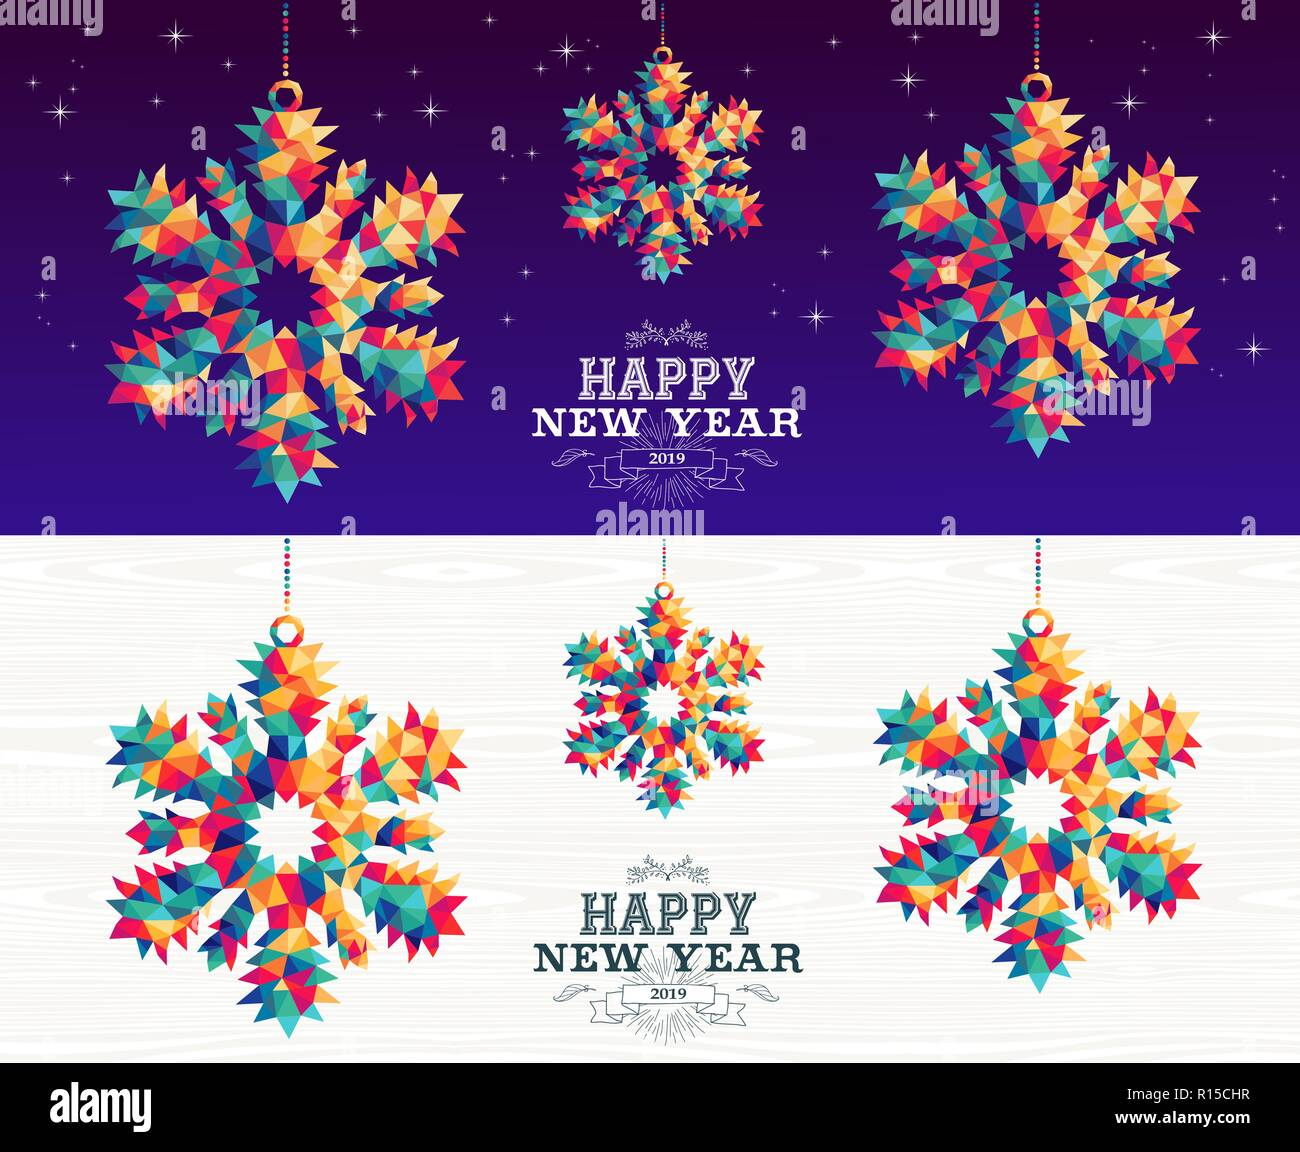 happy new year 2019 colorful hipster triangle snowflake holiday ornaments banner set with night sky and wood background eps10 vector